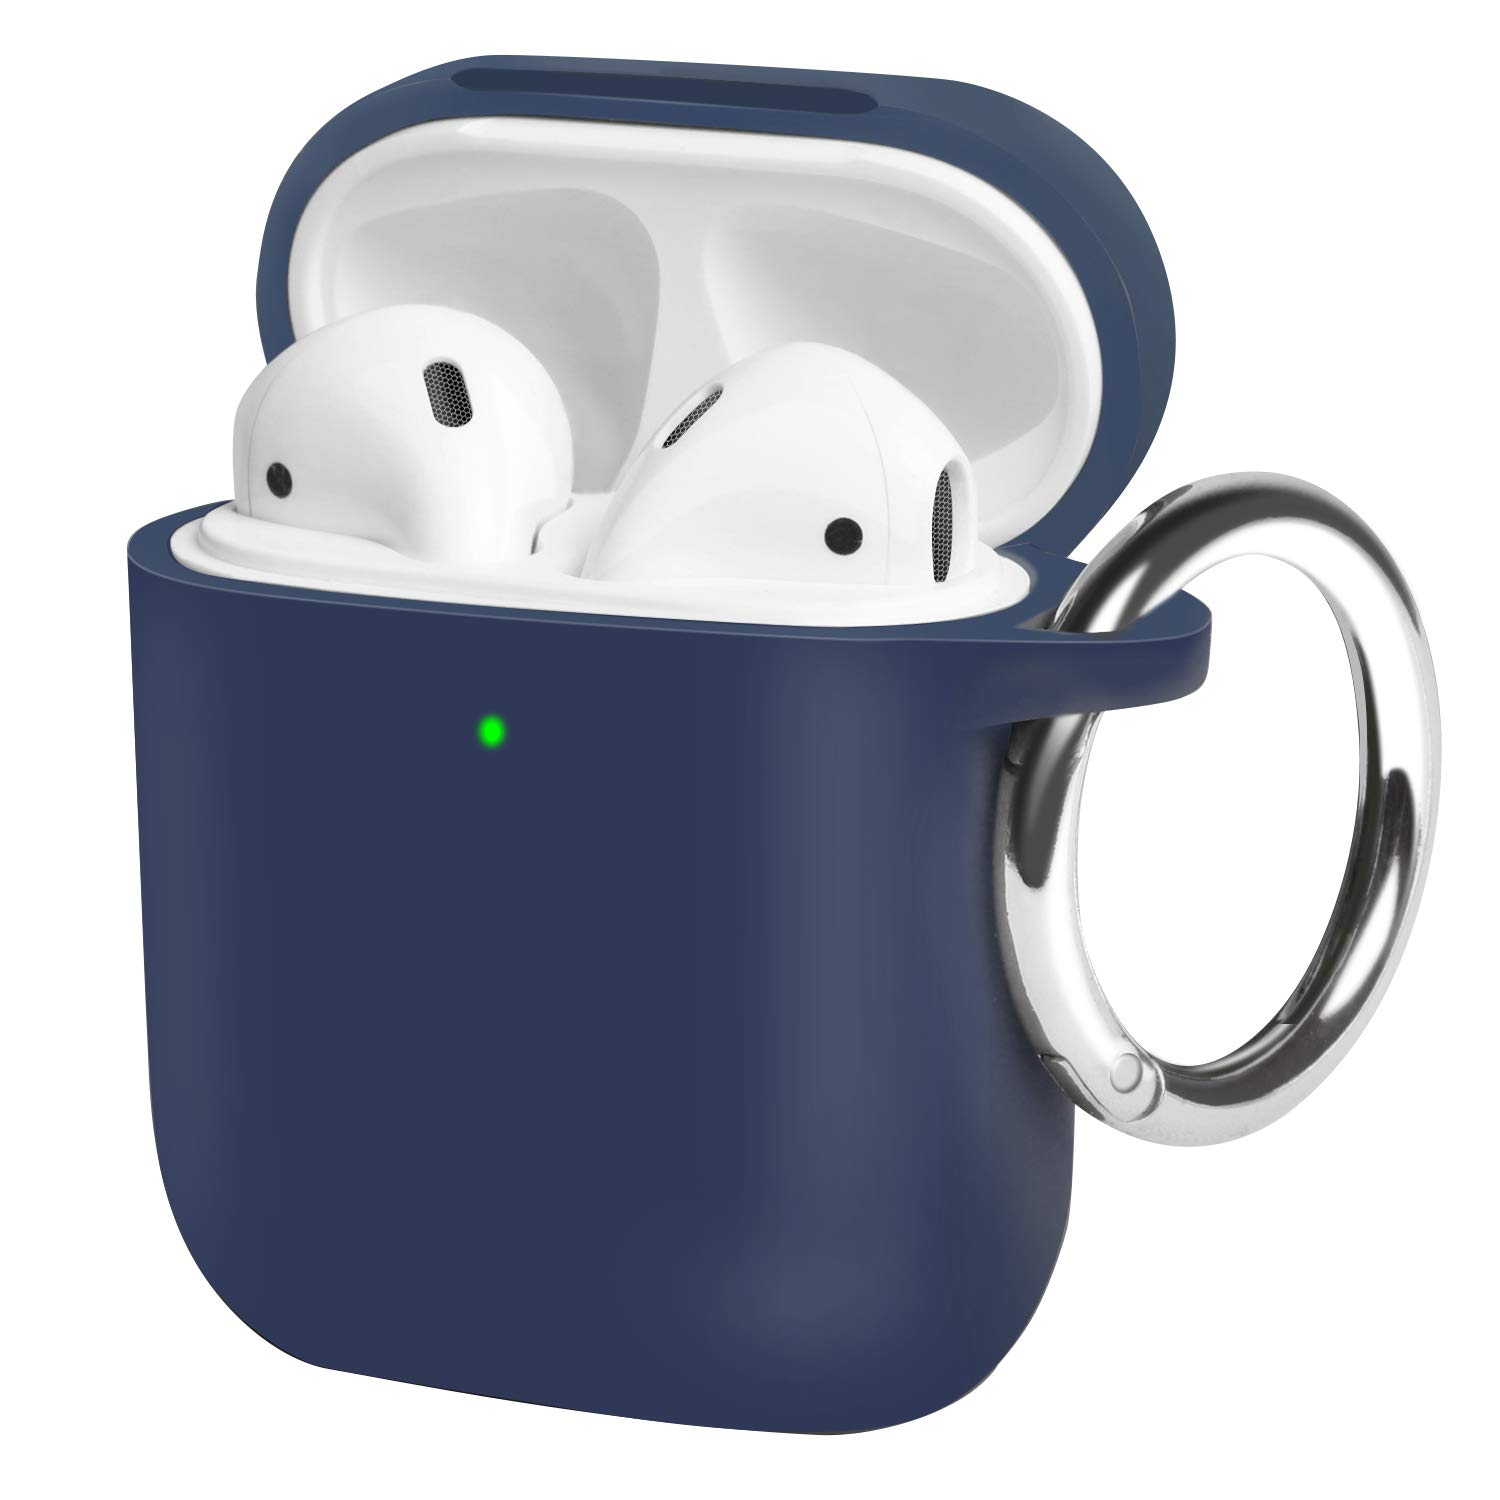 OTOFLY AirPods Case, with Detachable Round Carabiner Full Body Protection Silicone Cover Compatible with AirPods 2&1 [Front LED Visible/Supports Wireless Charging] (Midnight Blue)